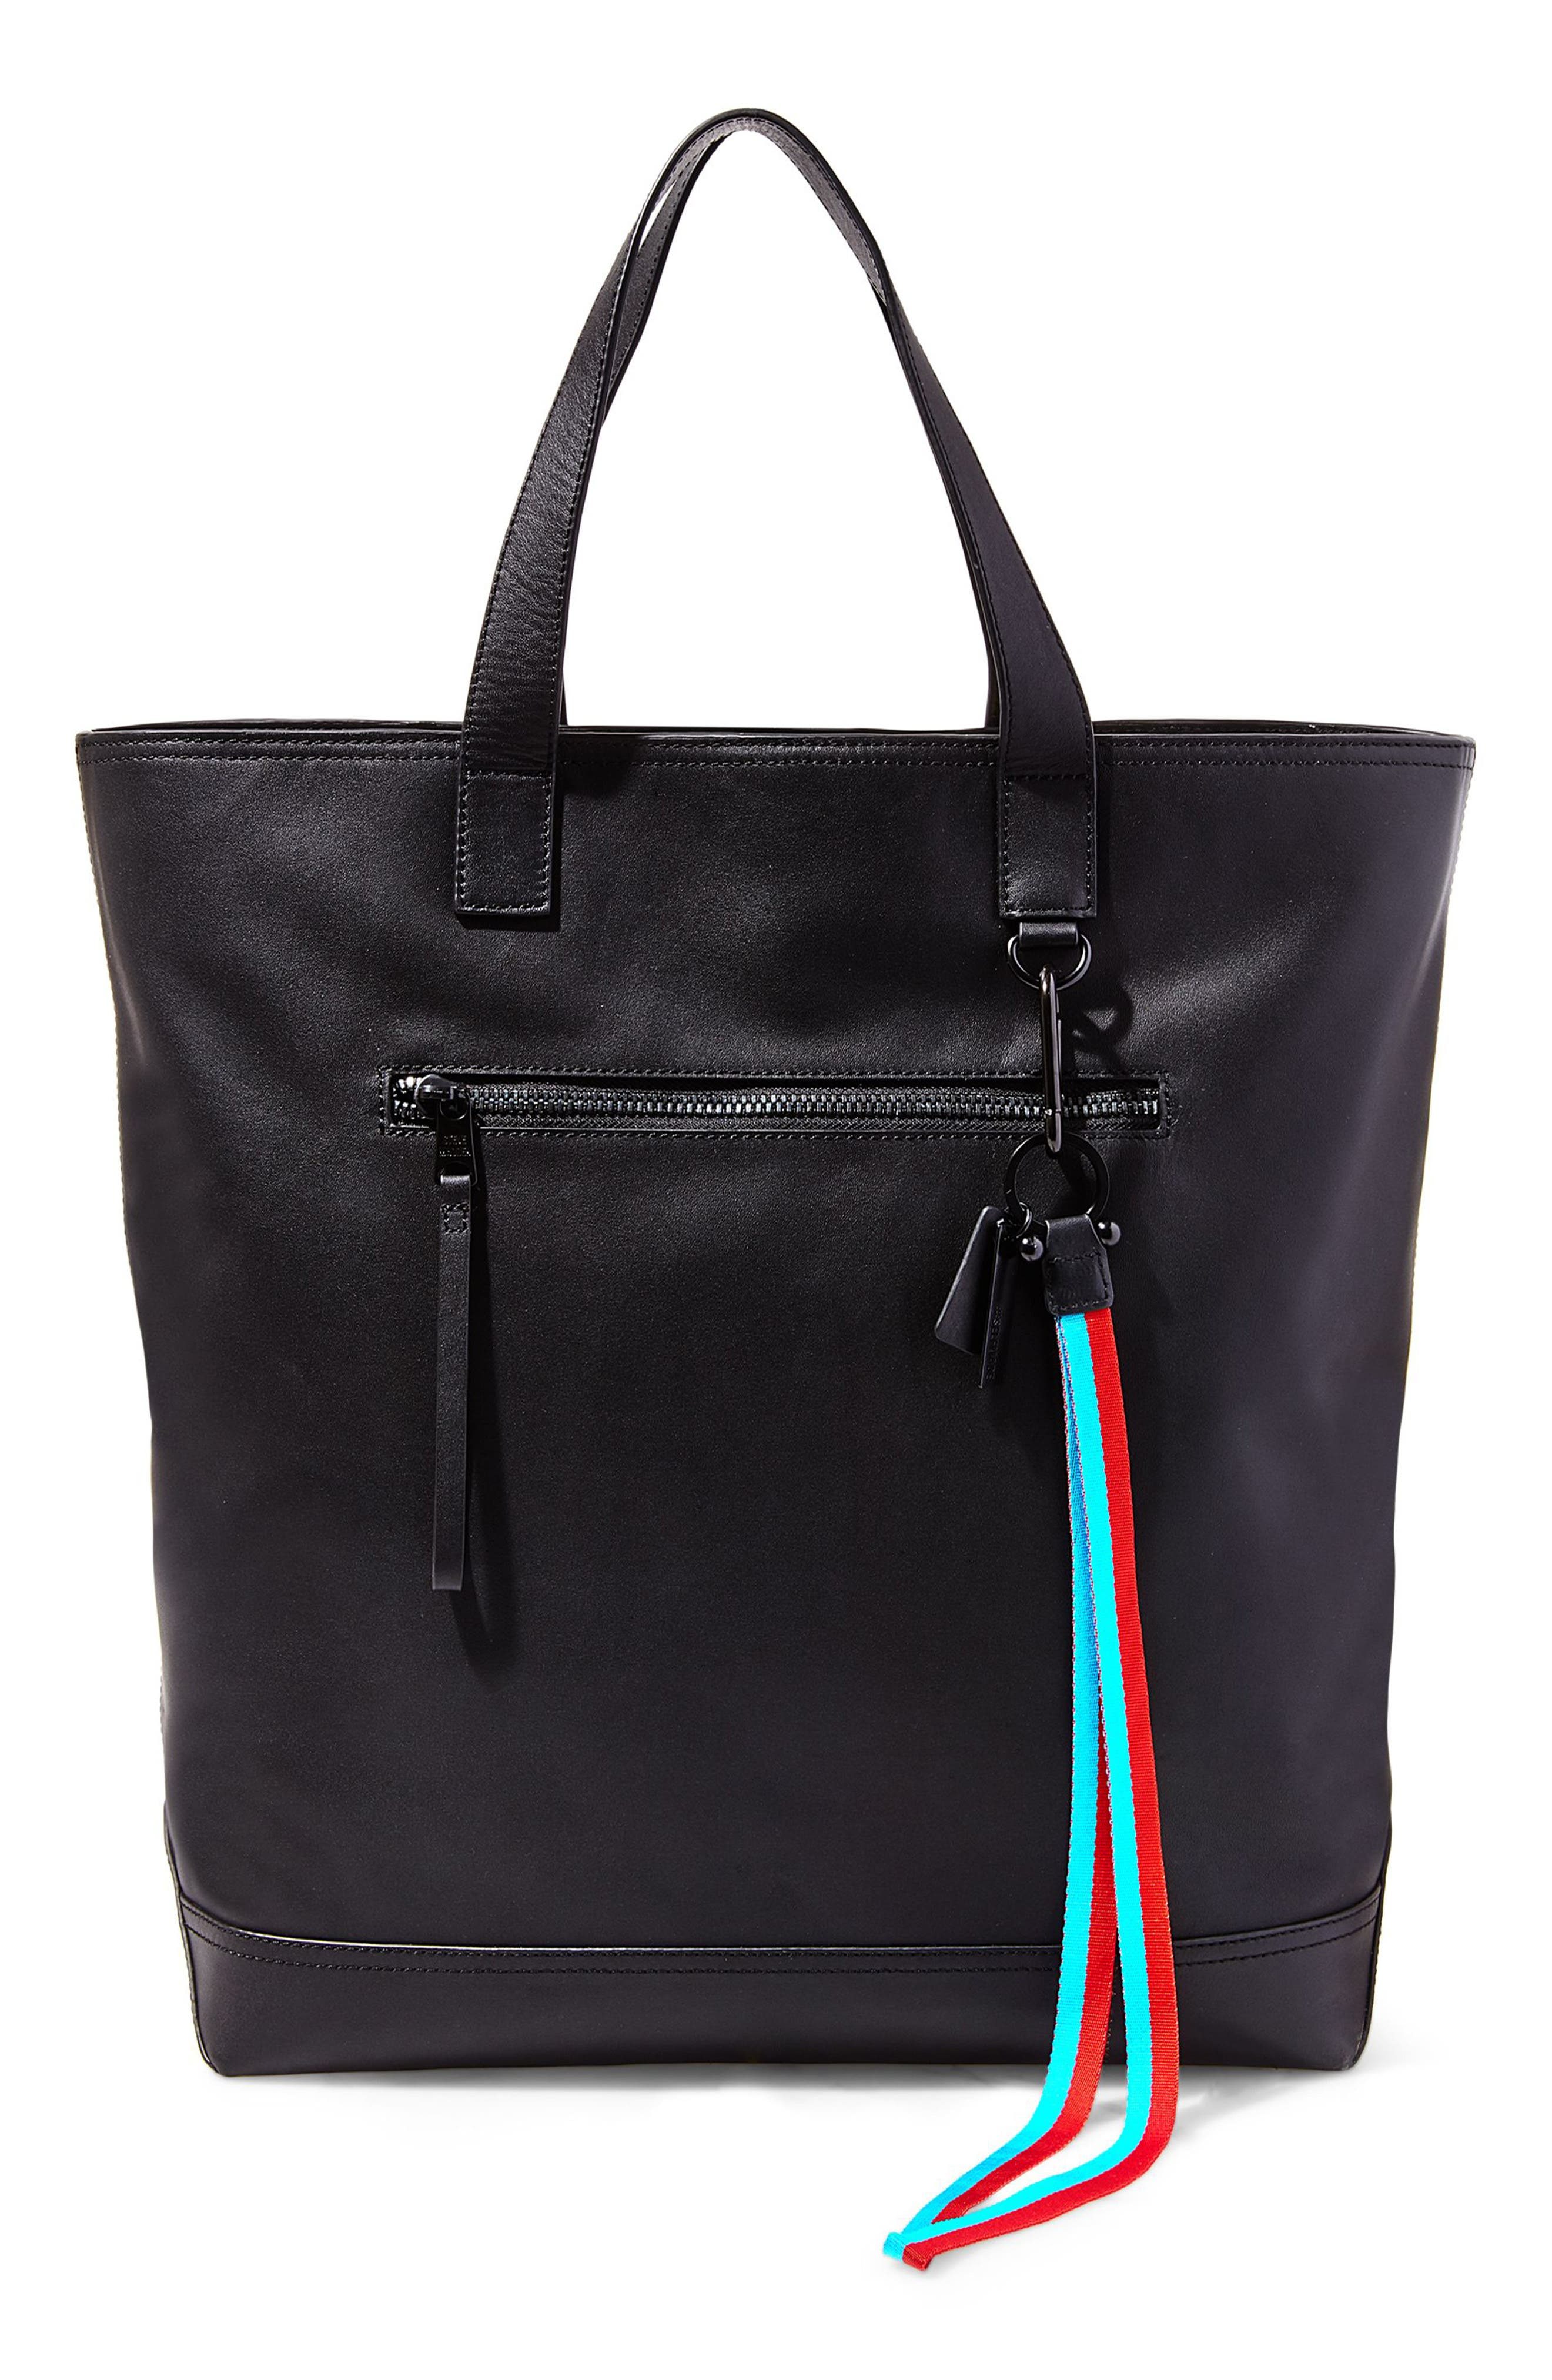 GQ x Steve Madden Leather Tote Bag,                             Main thumbnail 1, color,                             Black